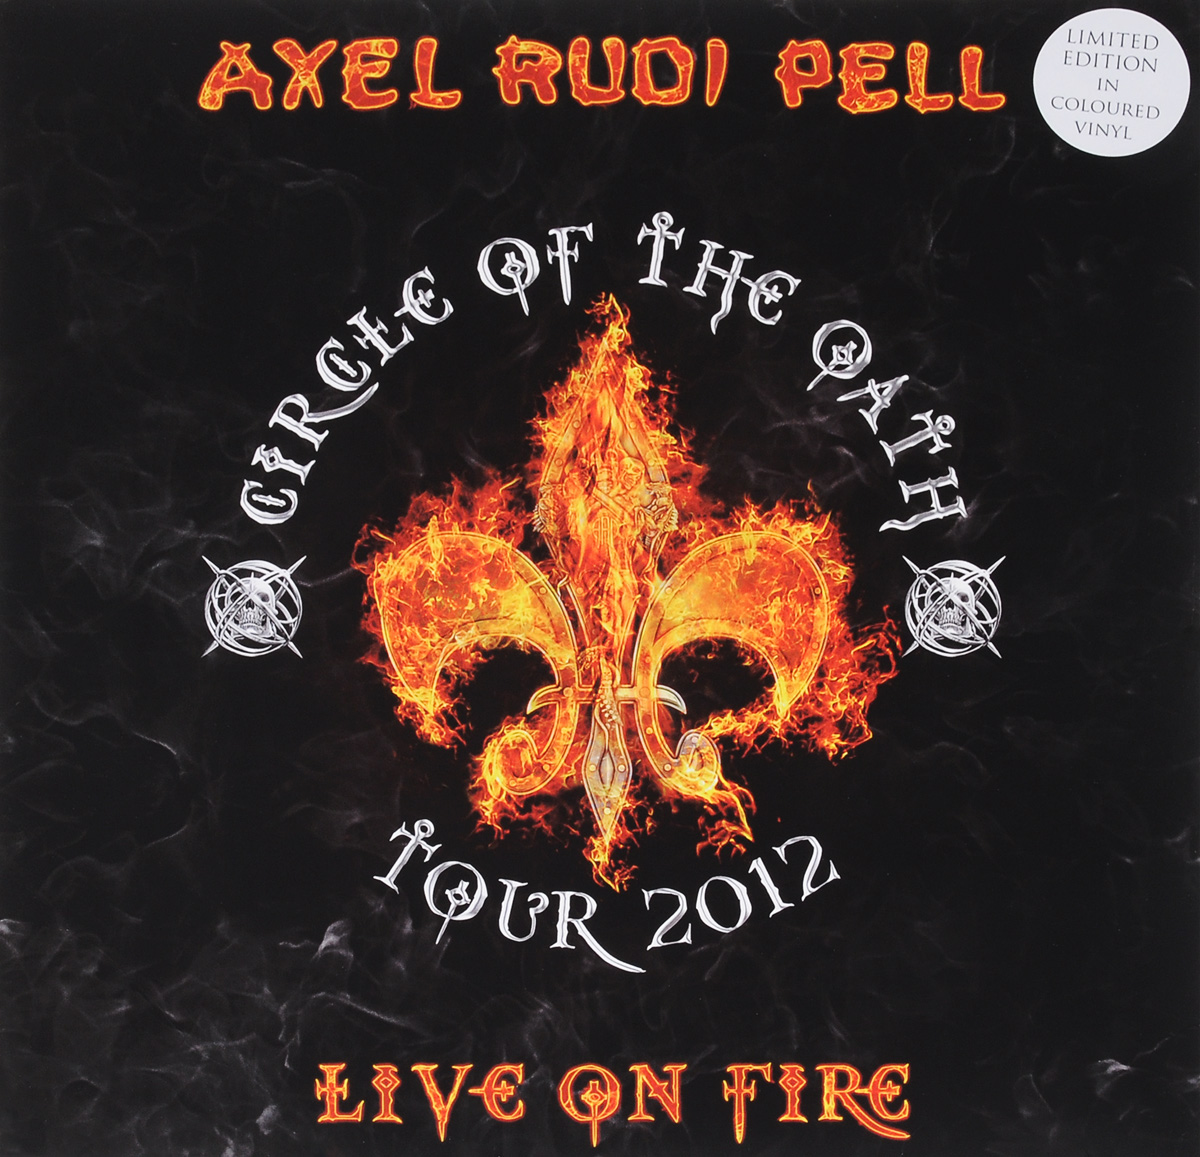 Аксель Руди Пелл Axel Rudi Pell. Live On Fire. Limited Edition In Colored Vinyl (3 LP) рубашка fore axel